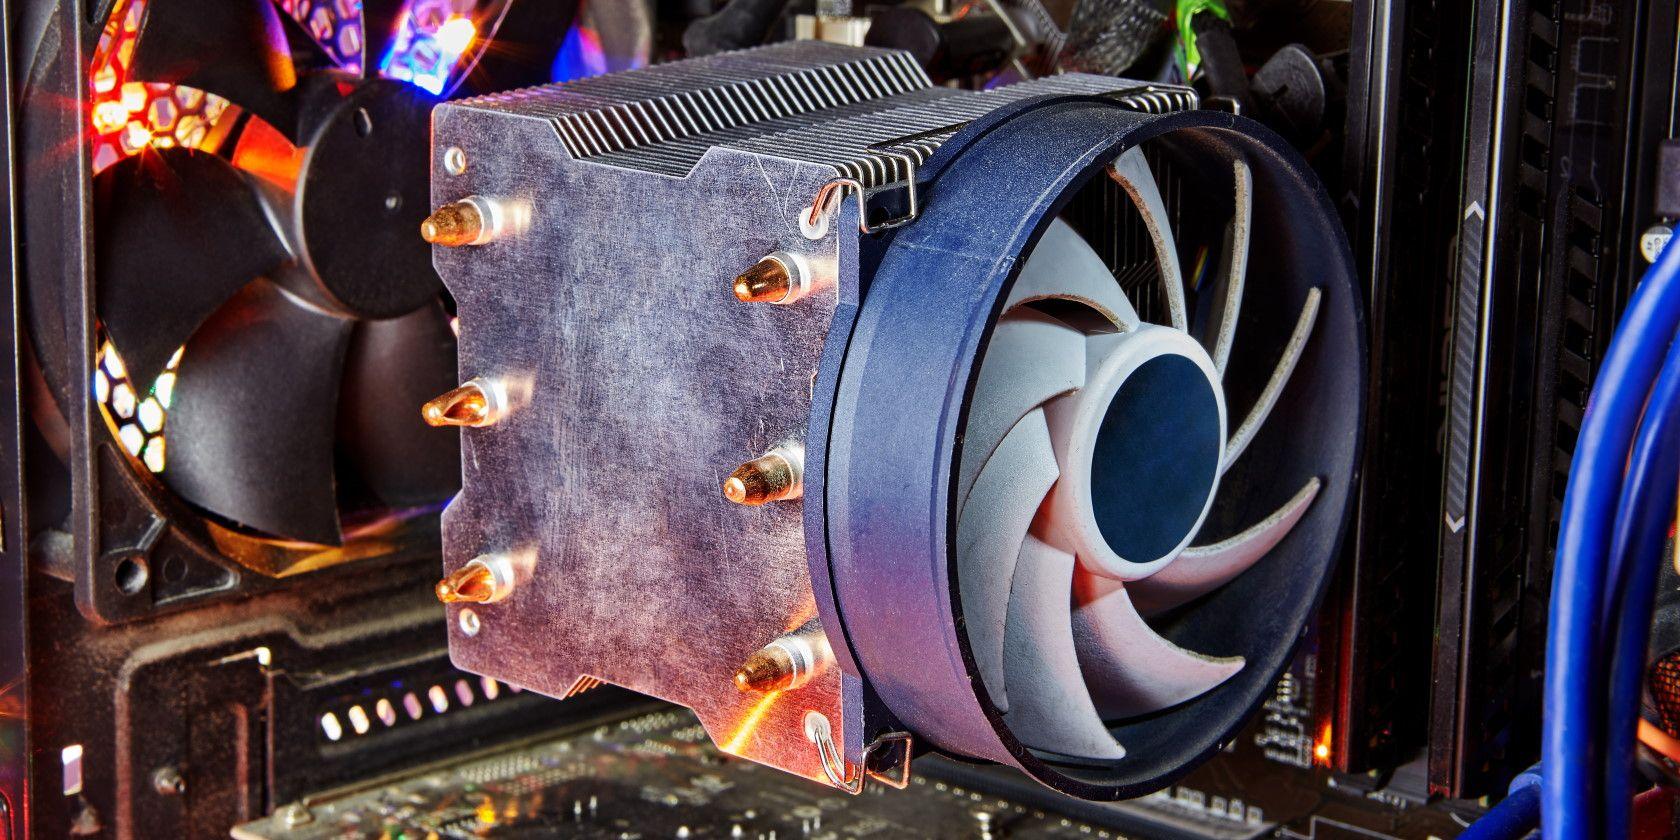 How to Check the CPU Temperature on Your PC